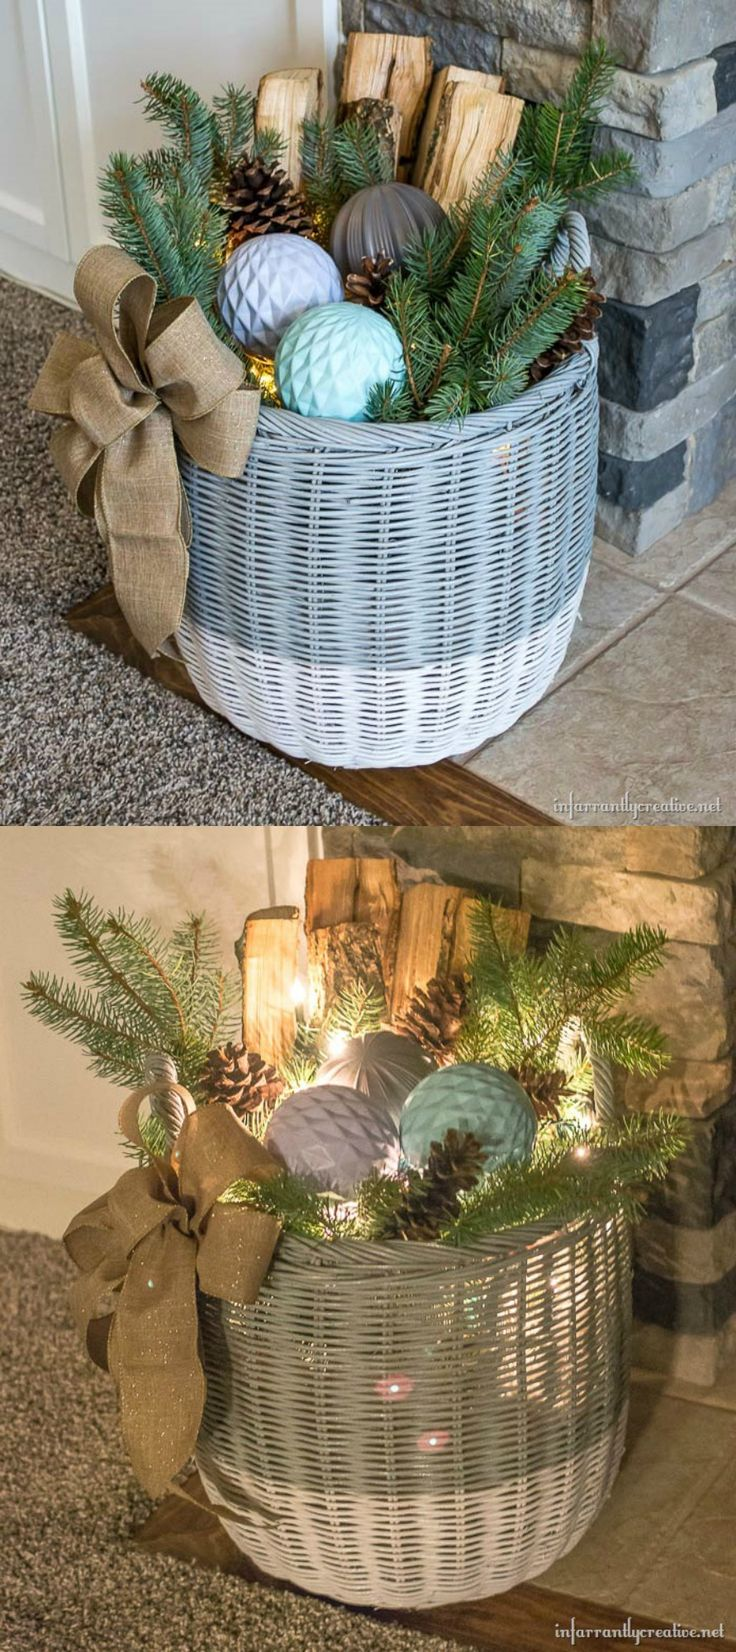 DIY Home Decor ~ Use items from your yard and a cheap basket to create this simple Winter Wonderland basket with lights. I love the soft glow it gives out at night and that it can remain out through the holidays!